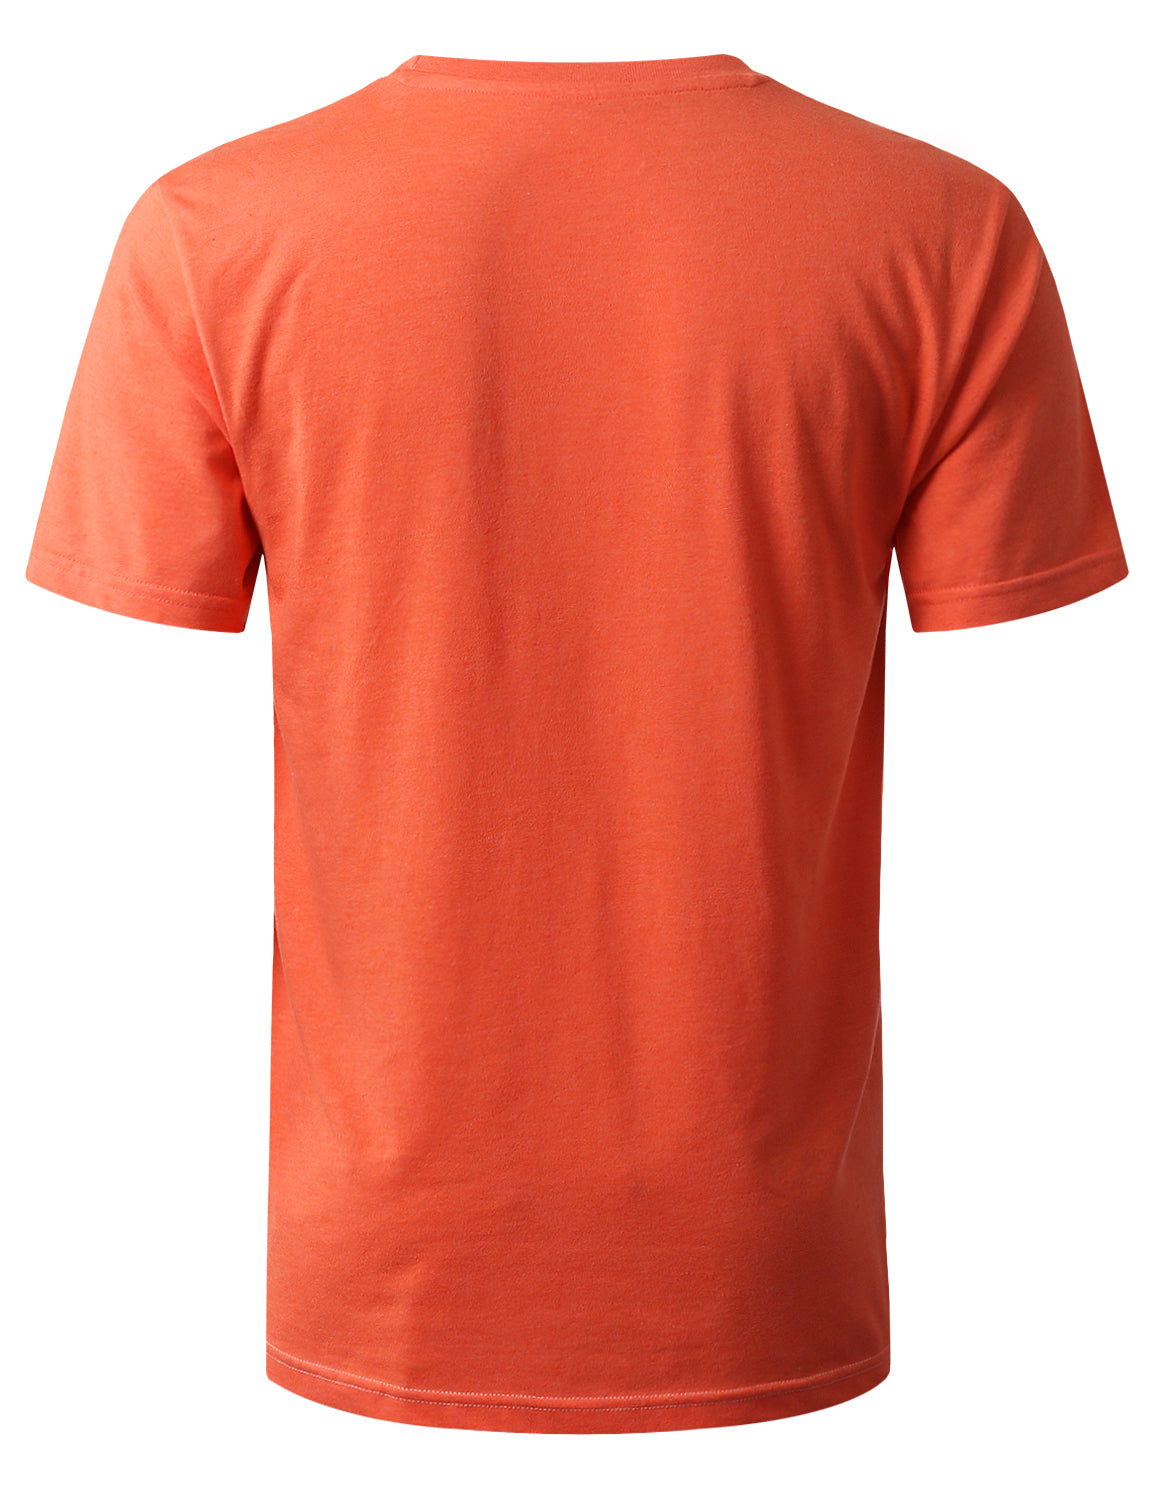 ORANGE Color Block Pocket Print T-Shirt - URBANCREWS